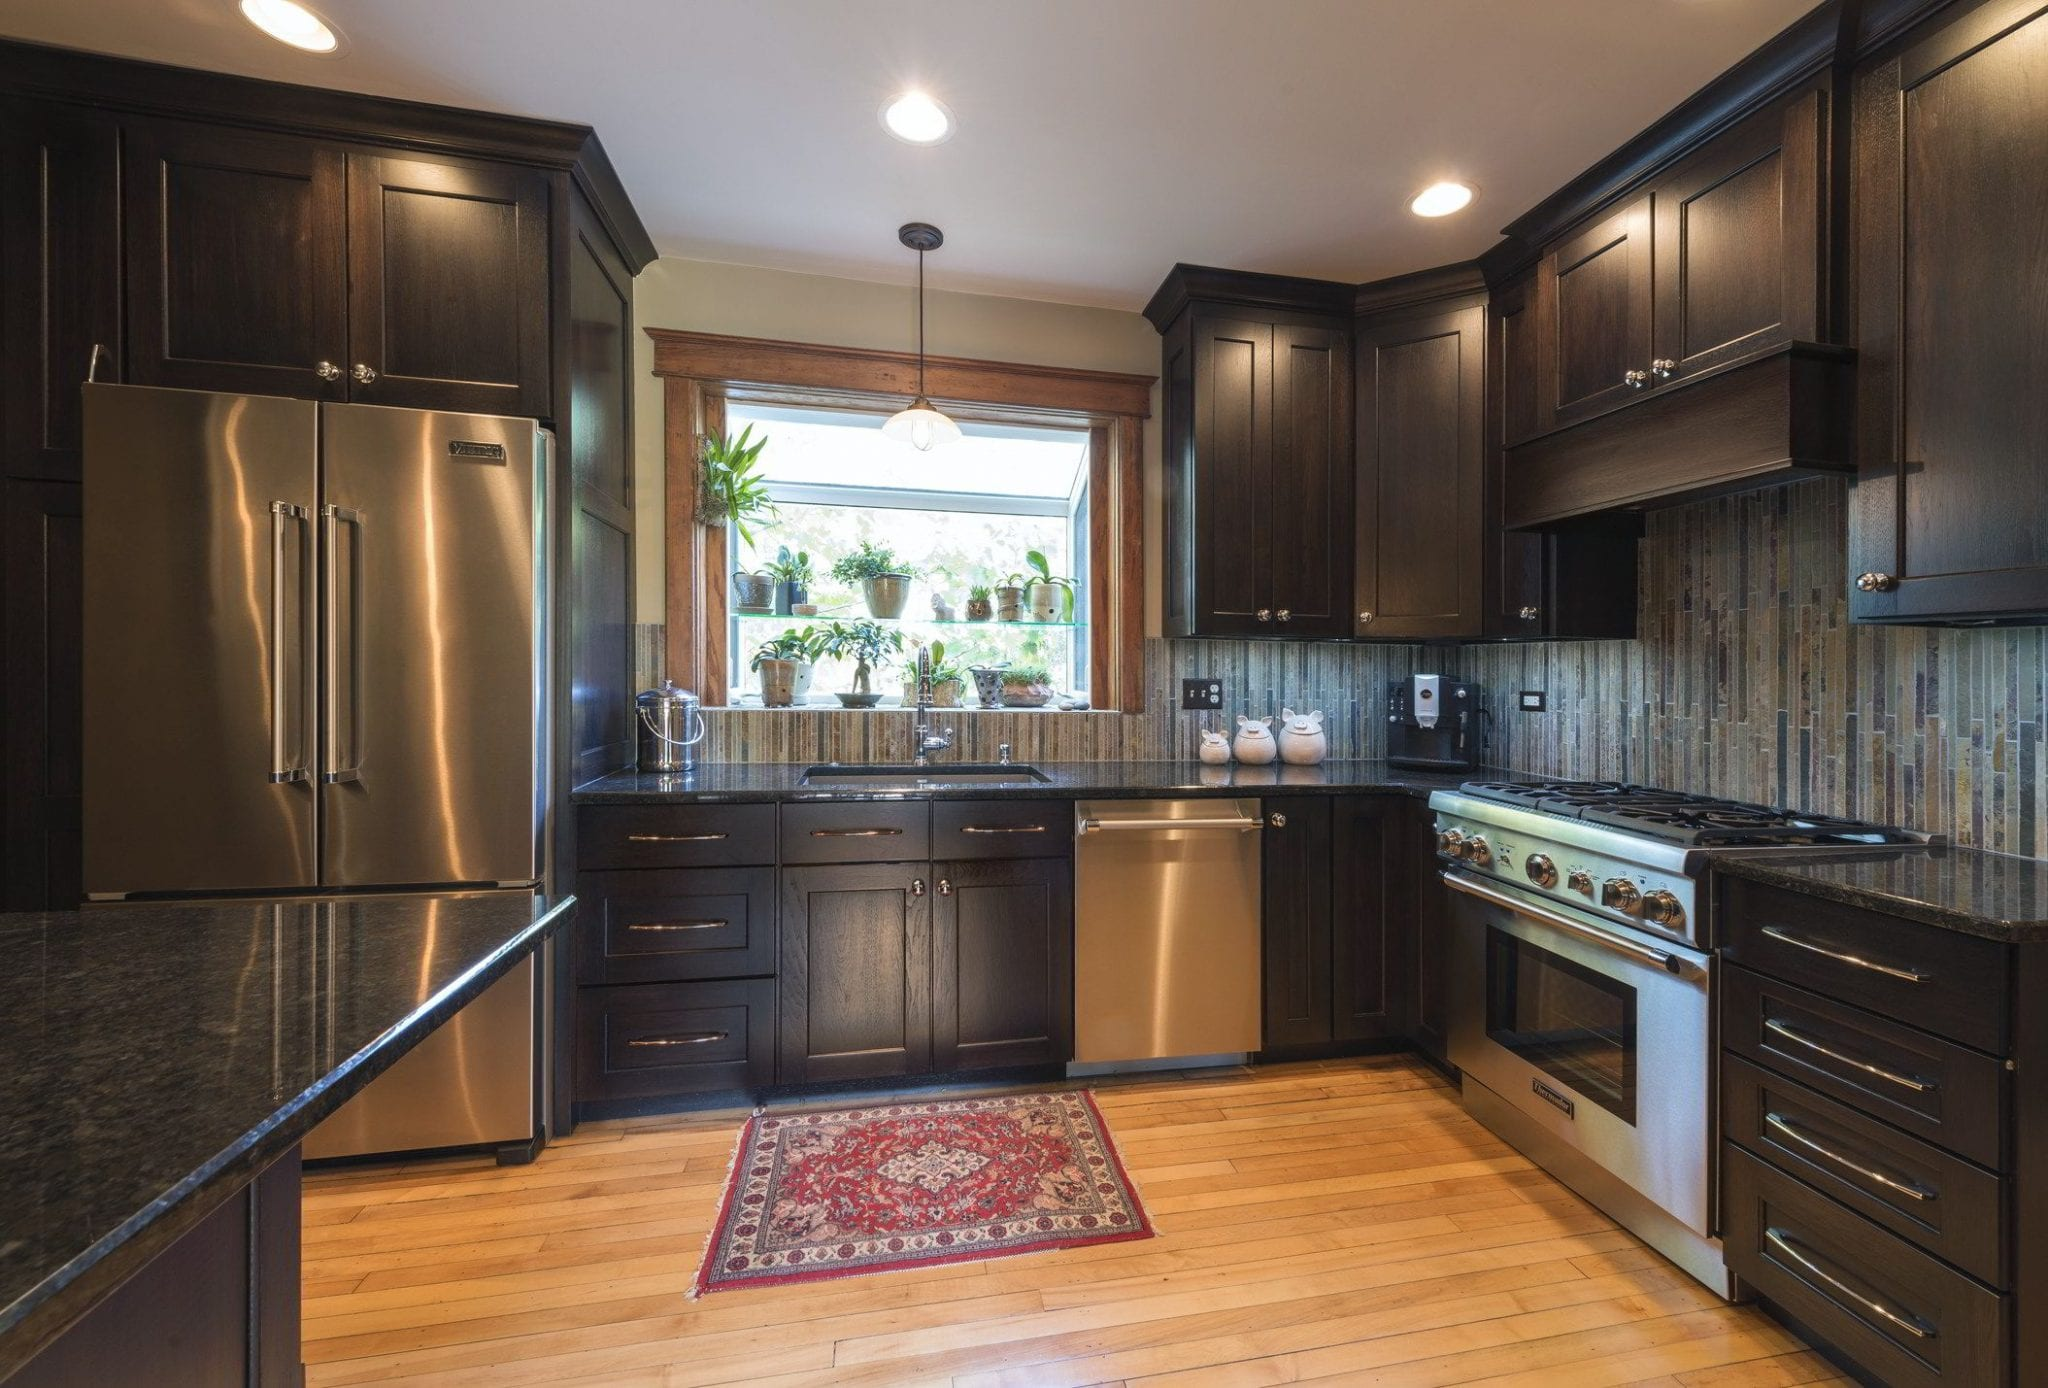 Highly recommended residential interior design firm offering expert kitchen remodeling